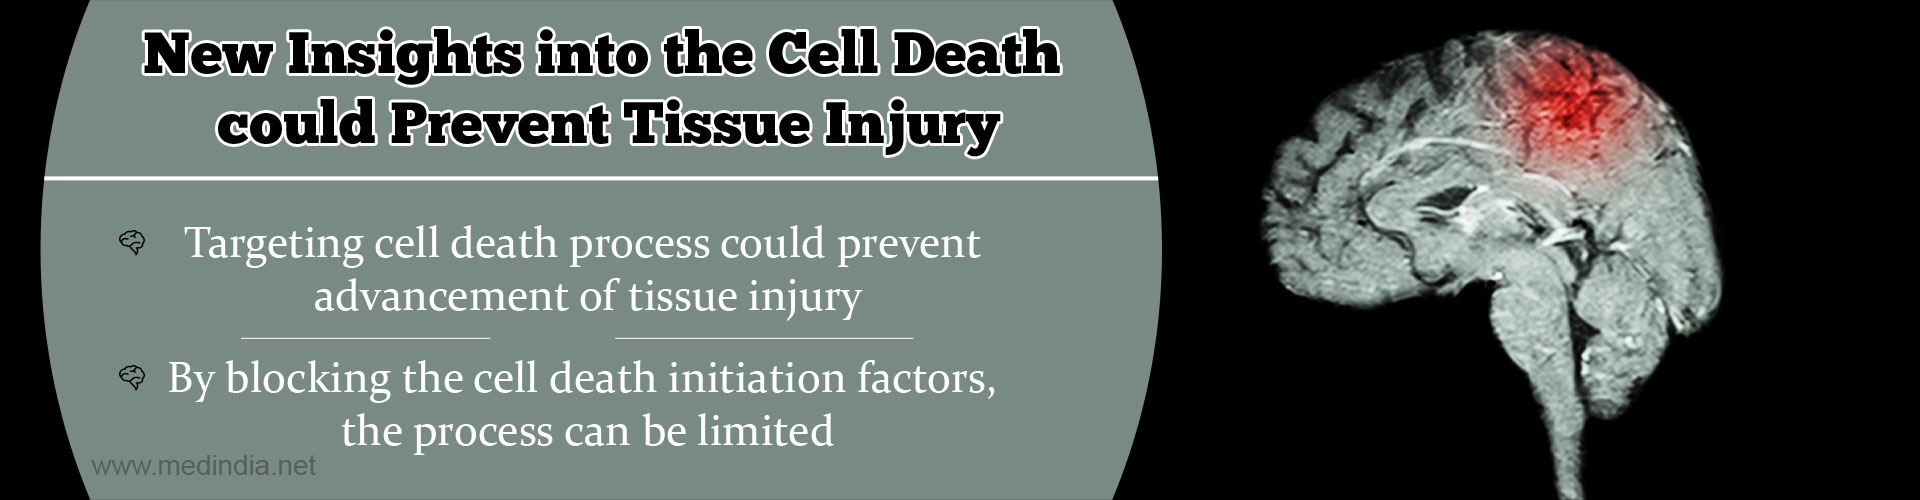 New Insights into the Cell Death could Prevent Tissue Injury - Targeting cell death process could prevent advancement of tissue injury - By blocking the cell death initiation factors, the process can be limited